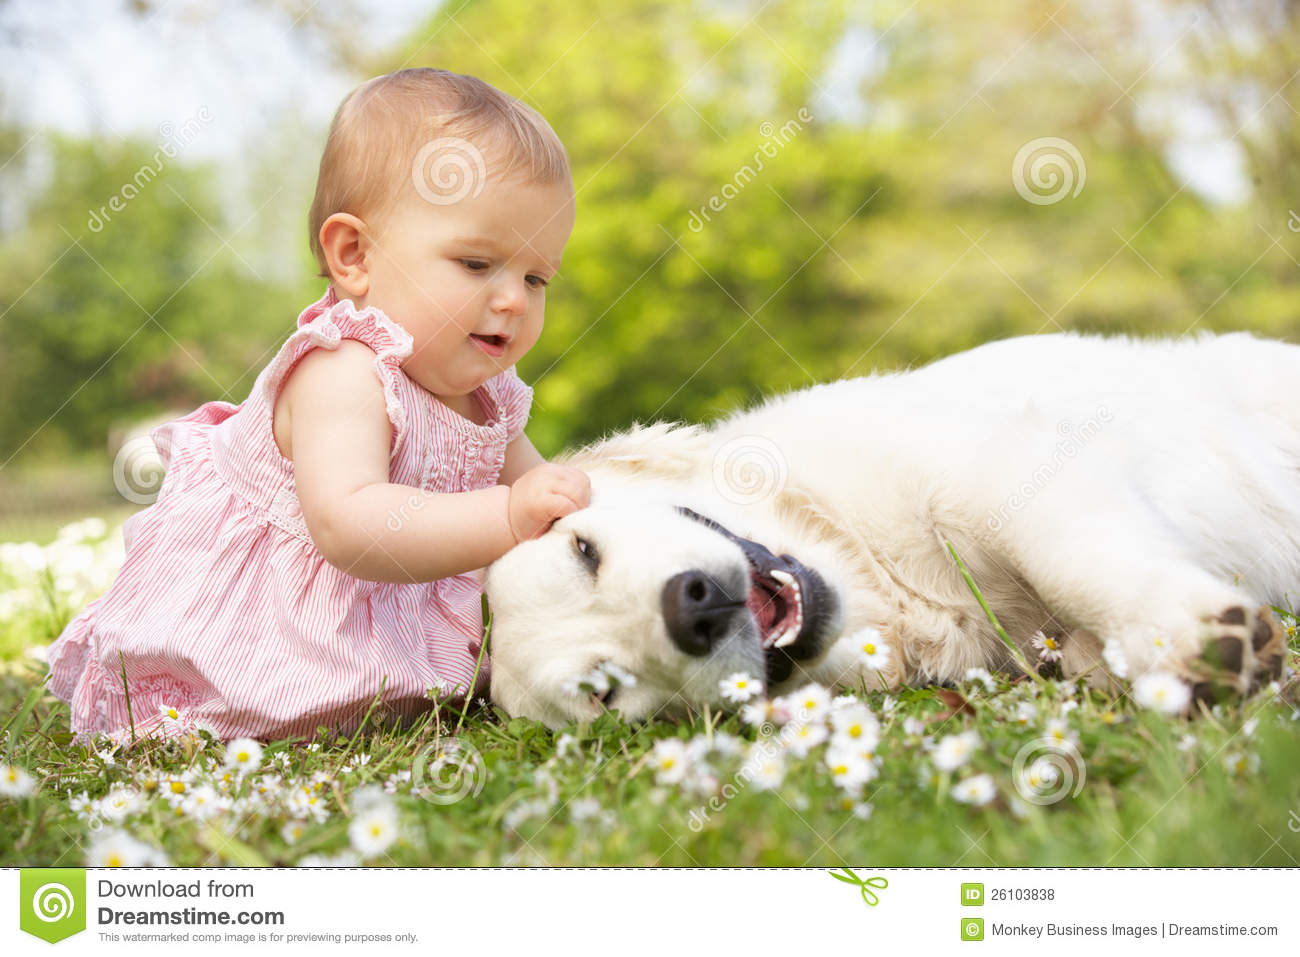 Baby Girl Sitting In Field Petting Family Dog Stock Photo ...